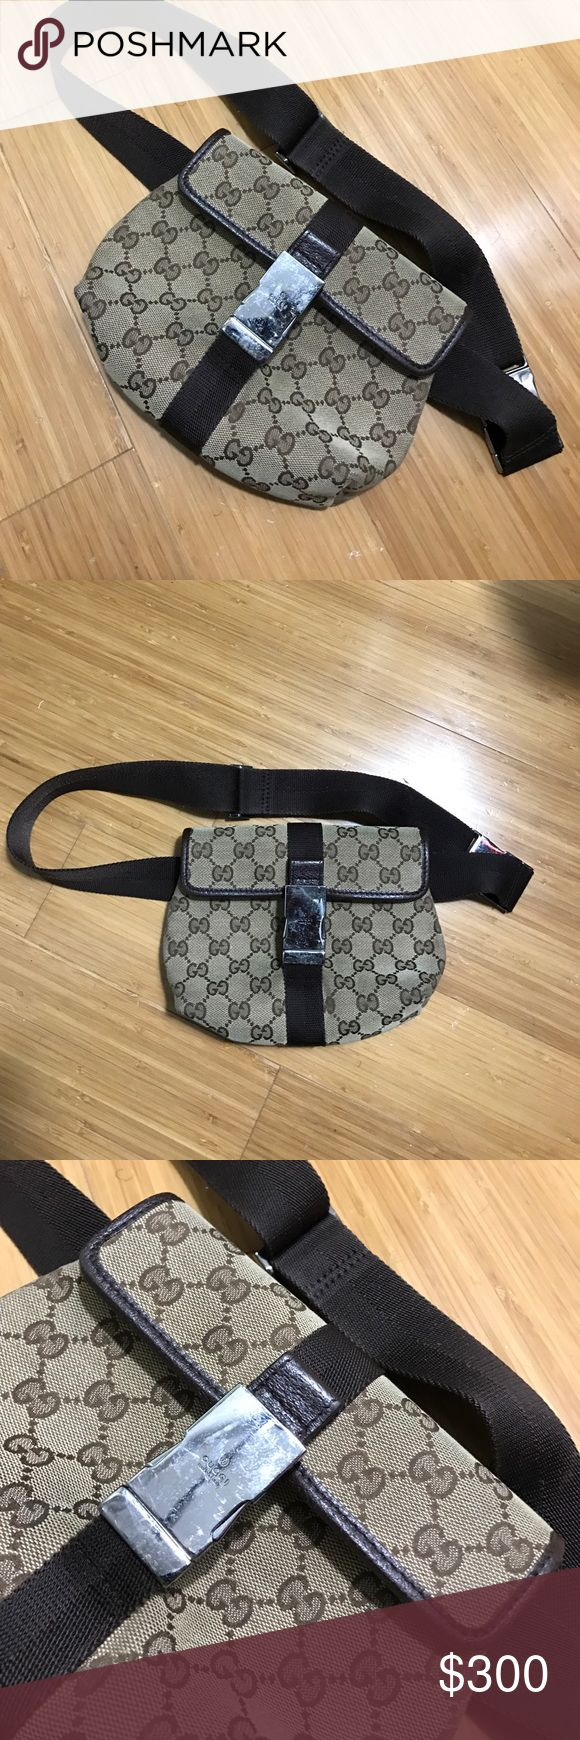 Vintage Gucci Guccissima Fanny Waist Belt Bag Authentic - Gucci Canvas with leather trim and lining - minor surface wear on hardware and some wear to interior  - see pics for details Gucci Bags